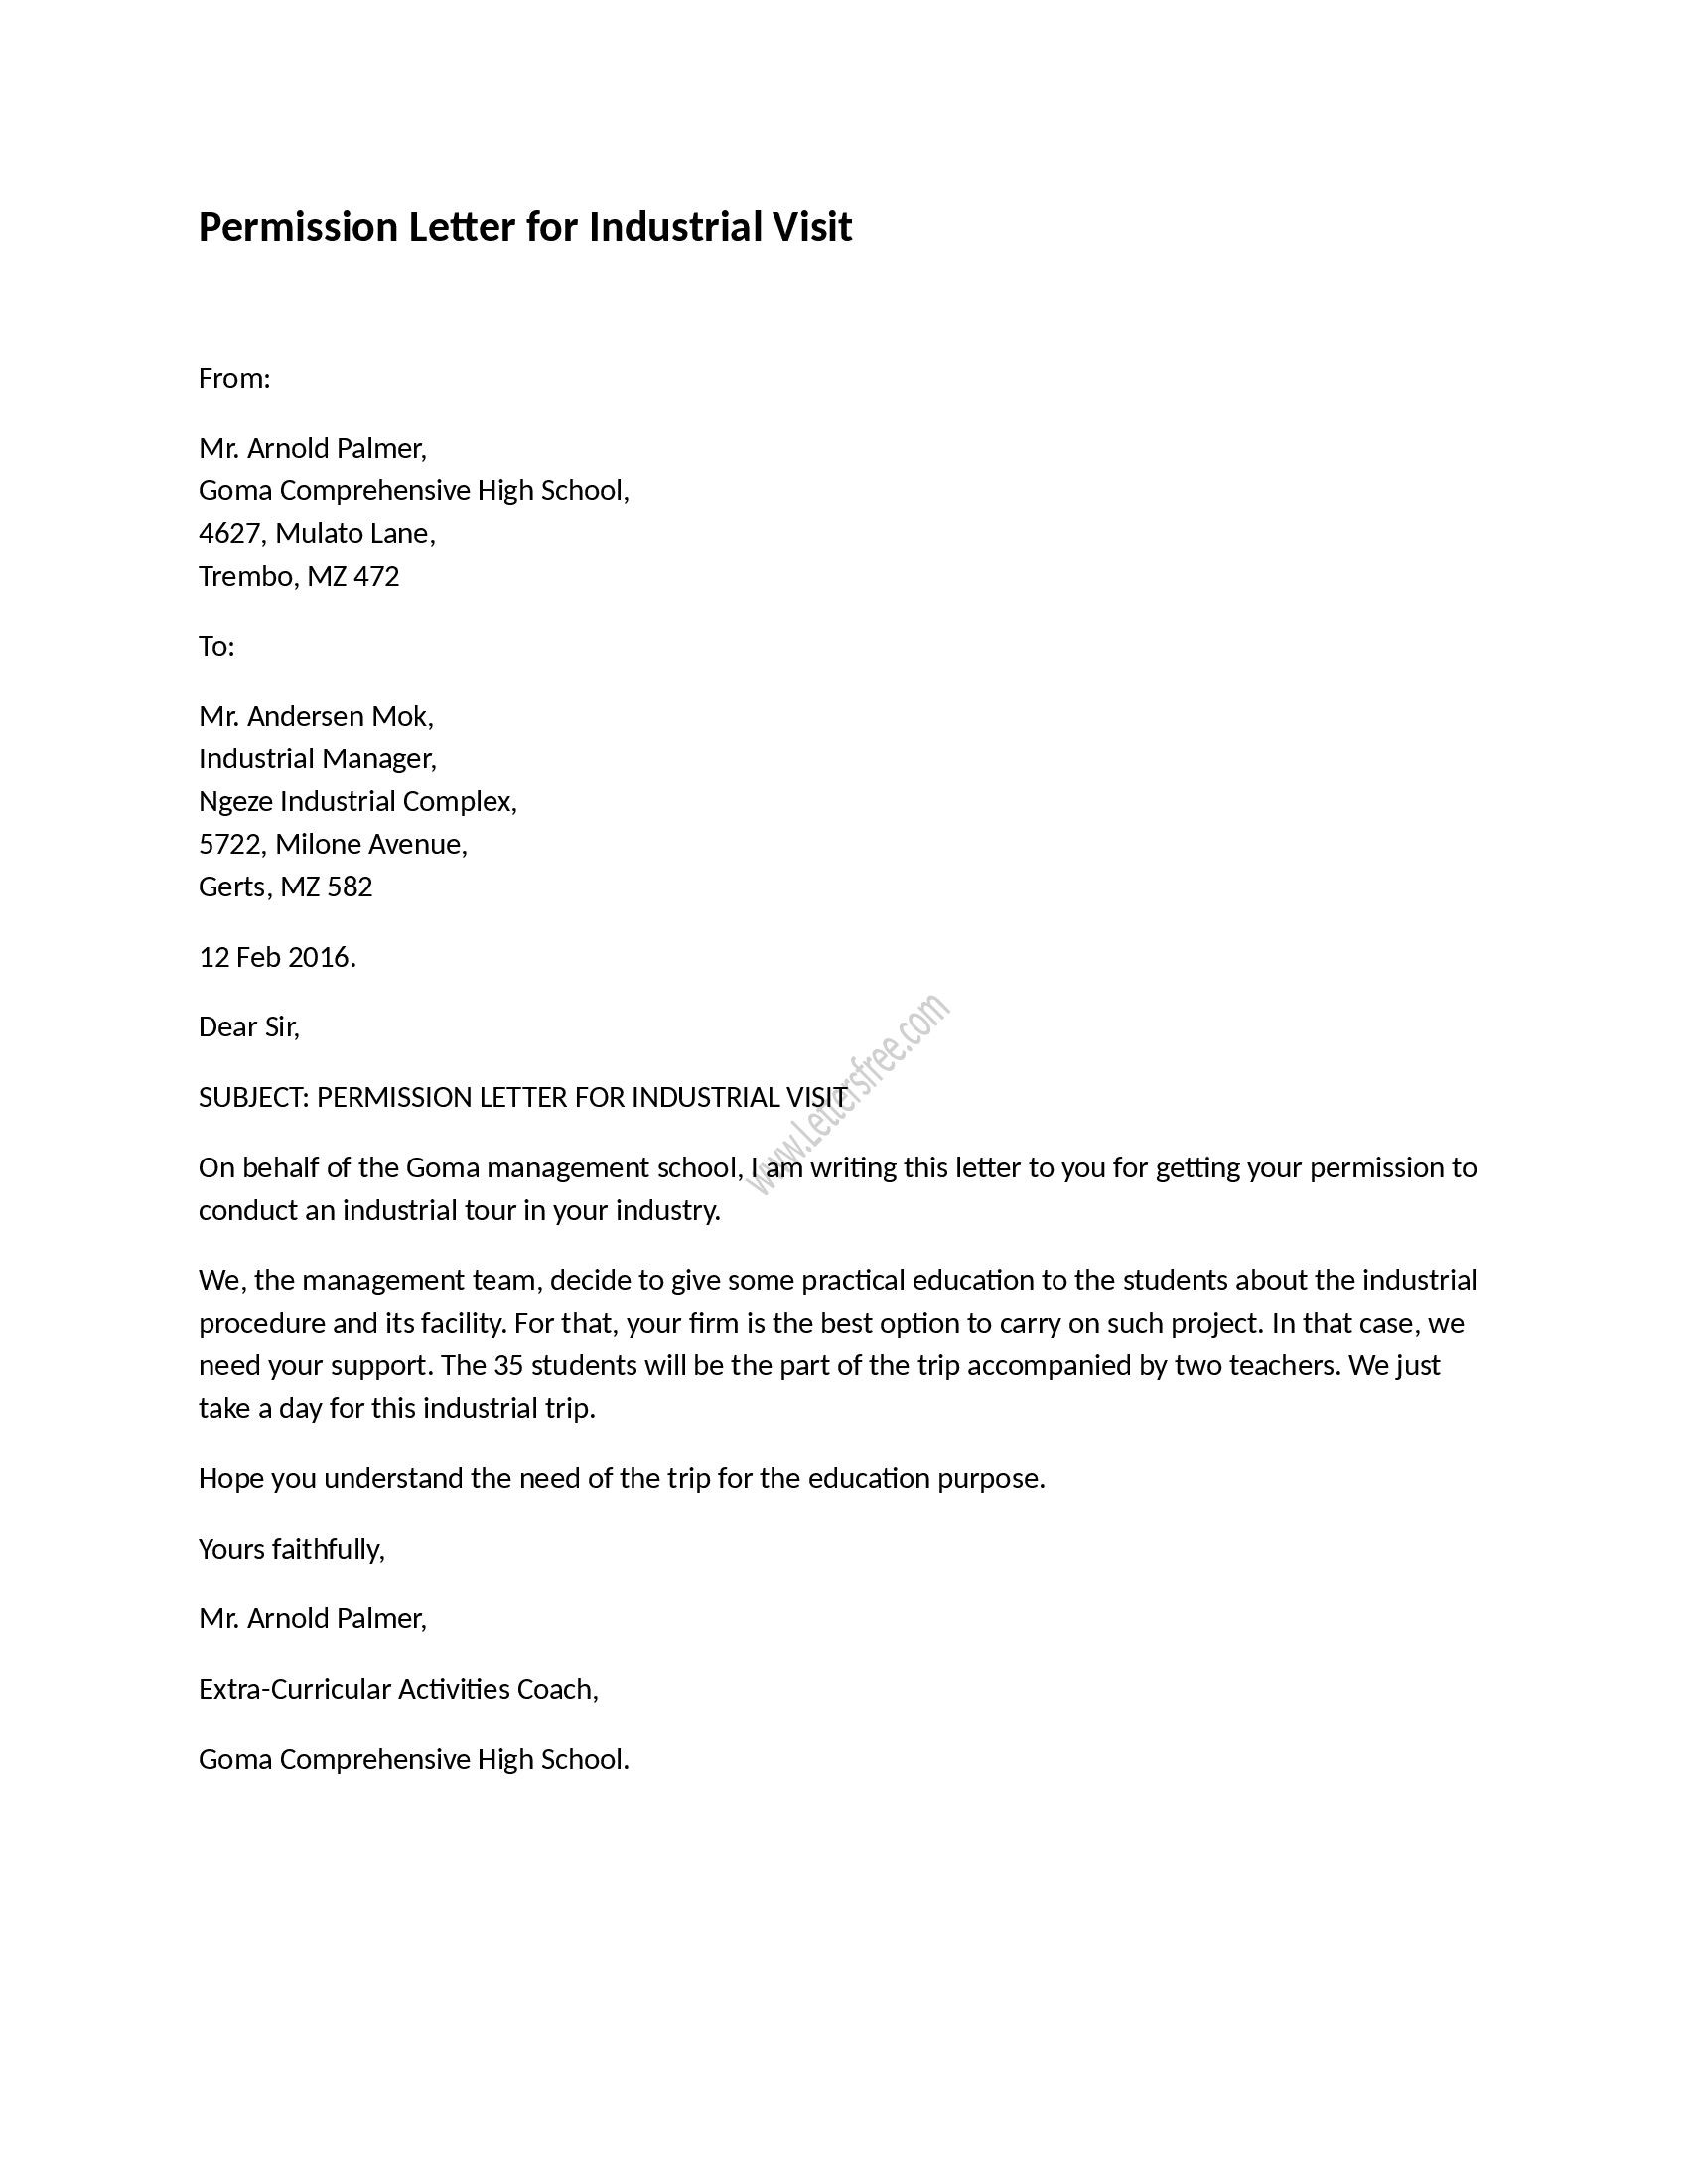 Contract Amendment Letter Template - Awesome Application Letter Sample format 12th Amendment